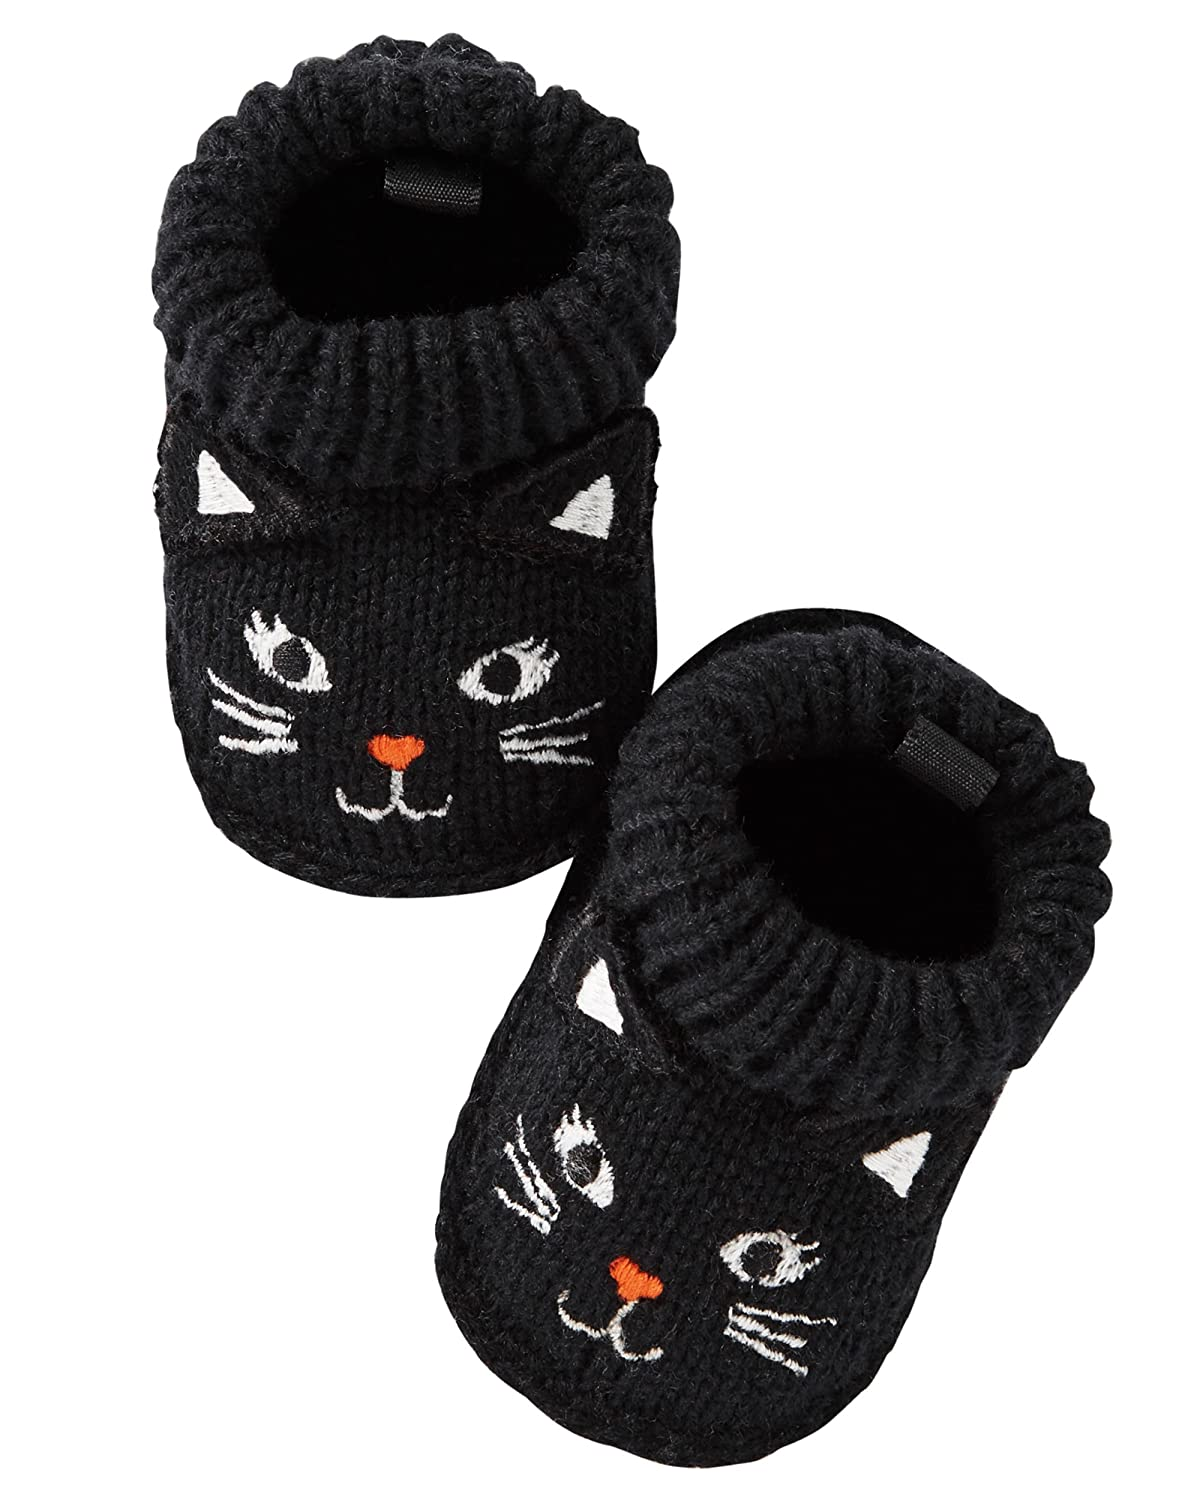 Carter's Baby Crocheted Halloween Booties Black Kitty) Carters